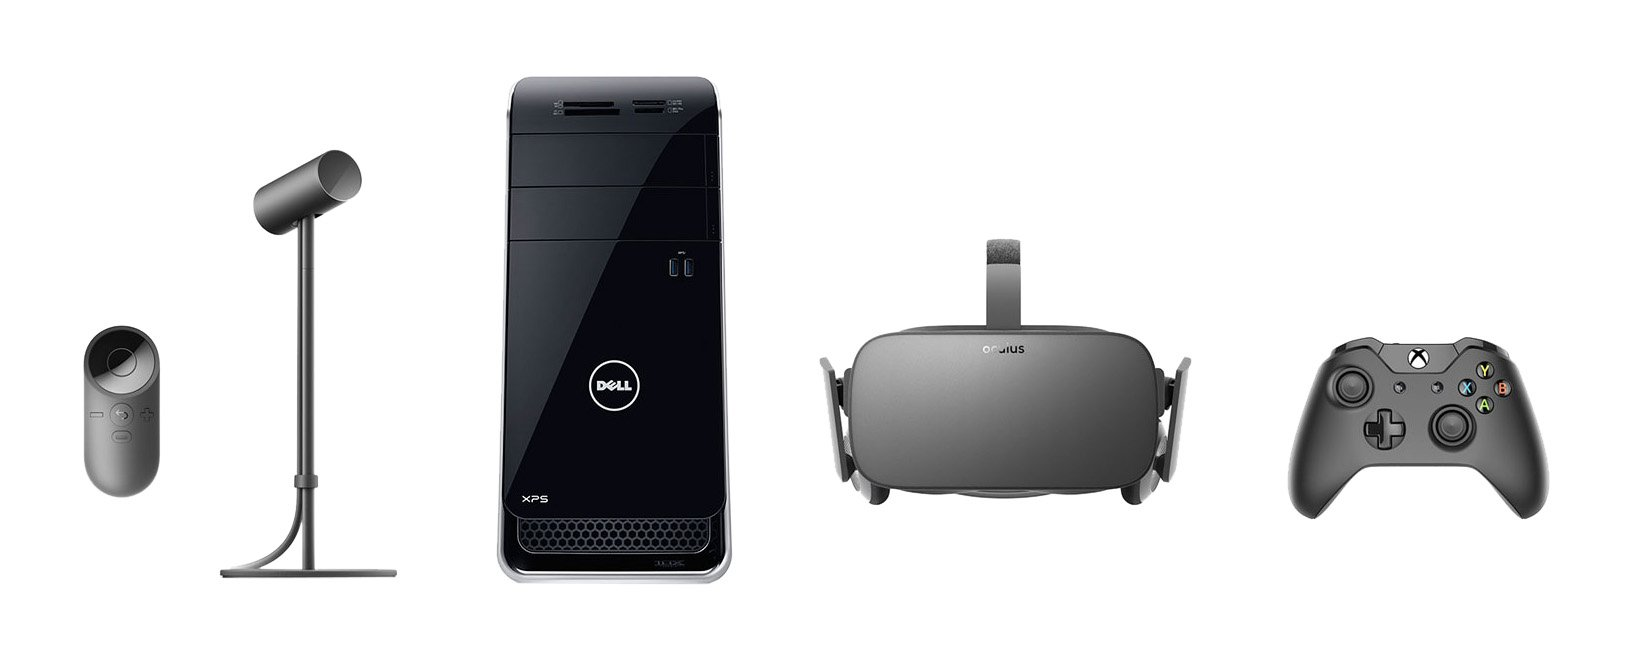 Review2 furthermore 182269595417 likewise Oculus Rift Dell Oculus Ready Xps 8900 Desktop Pc Bundle Discontinued By Manufacturer in addition 2315425 Dell Xps 8700 Using Vizio M65 Monitor furthermore 18848585. on dell xps 8900 desktop